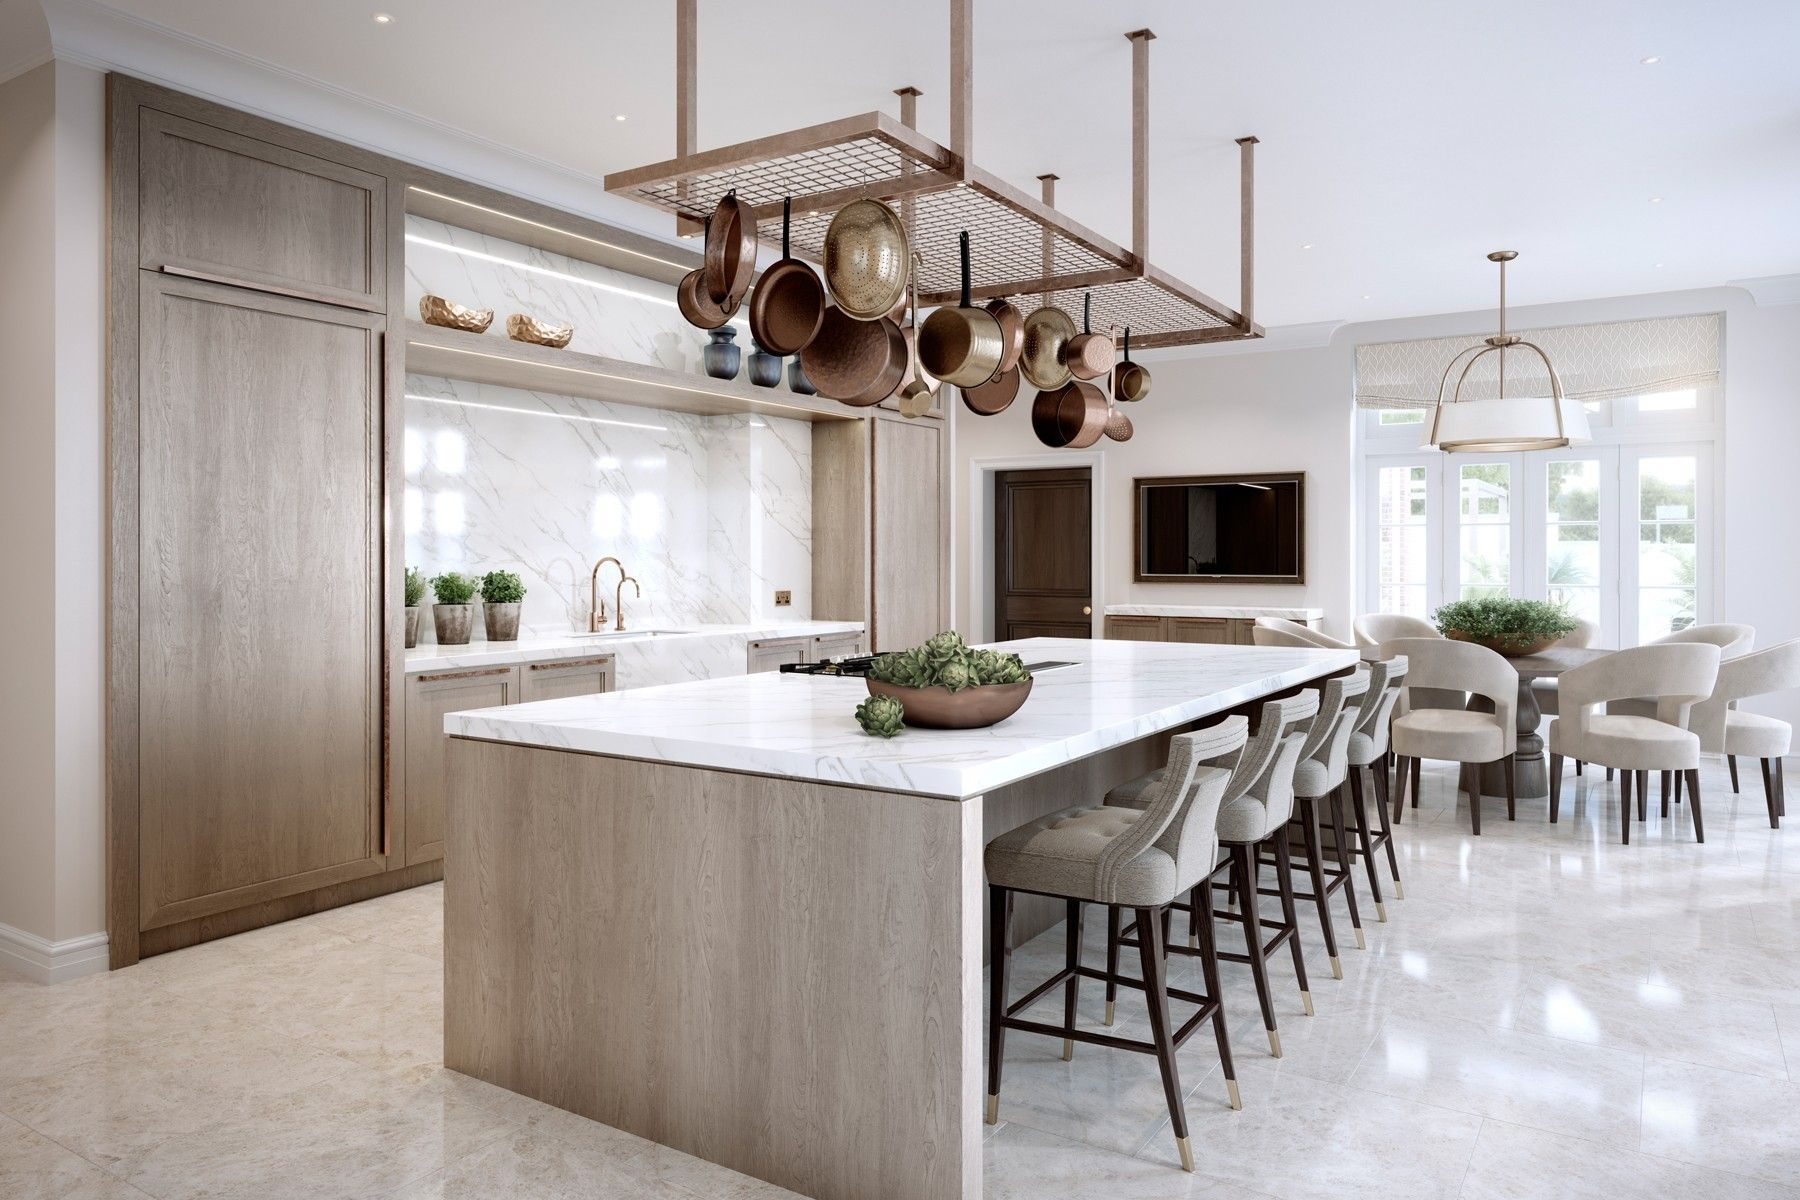 Kitchen Seating Ideas Surrey Family Home, Luxury Interior